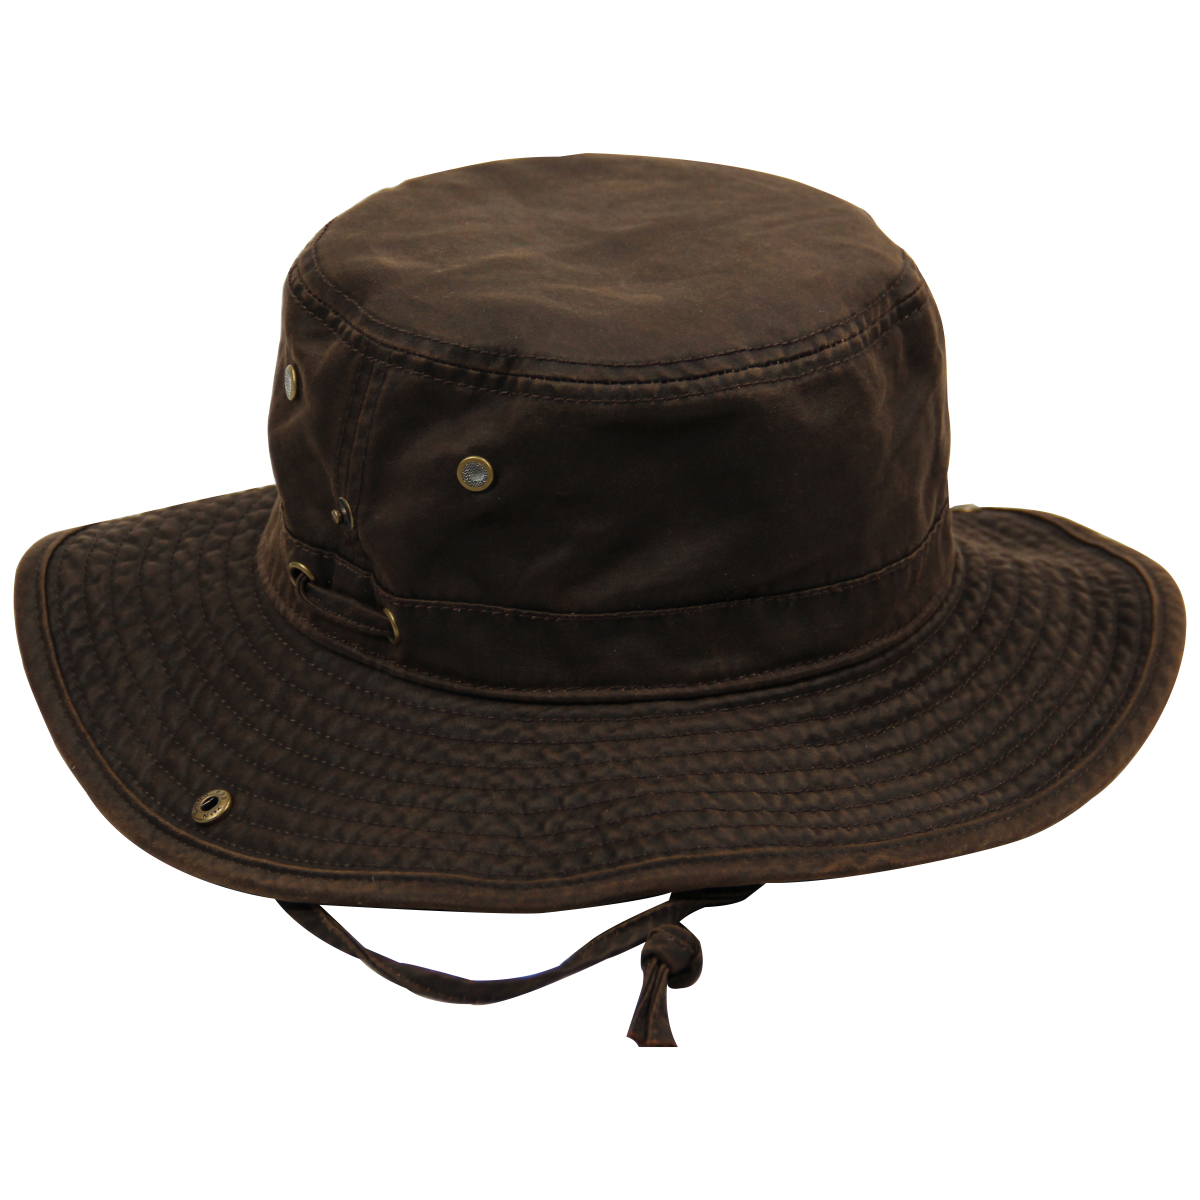 OILSKIN BUSH HAT